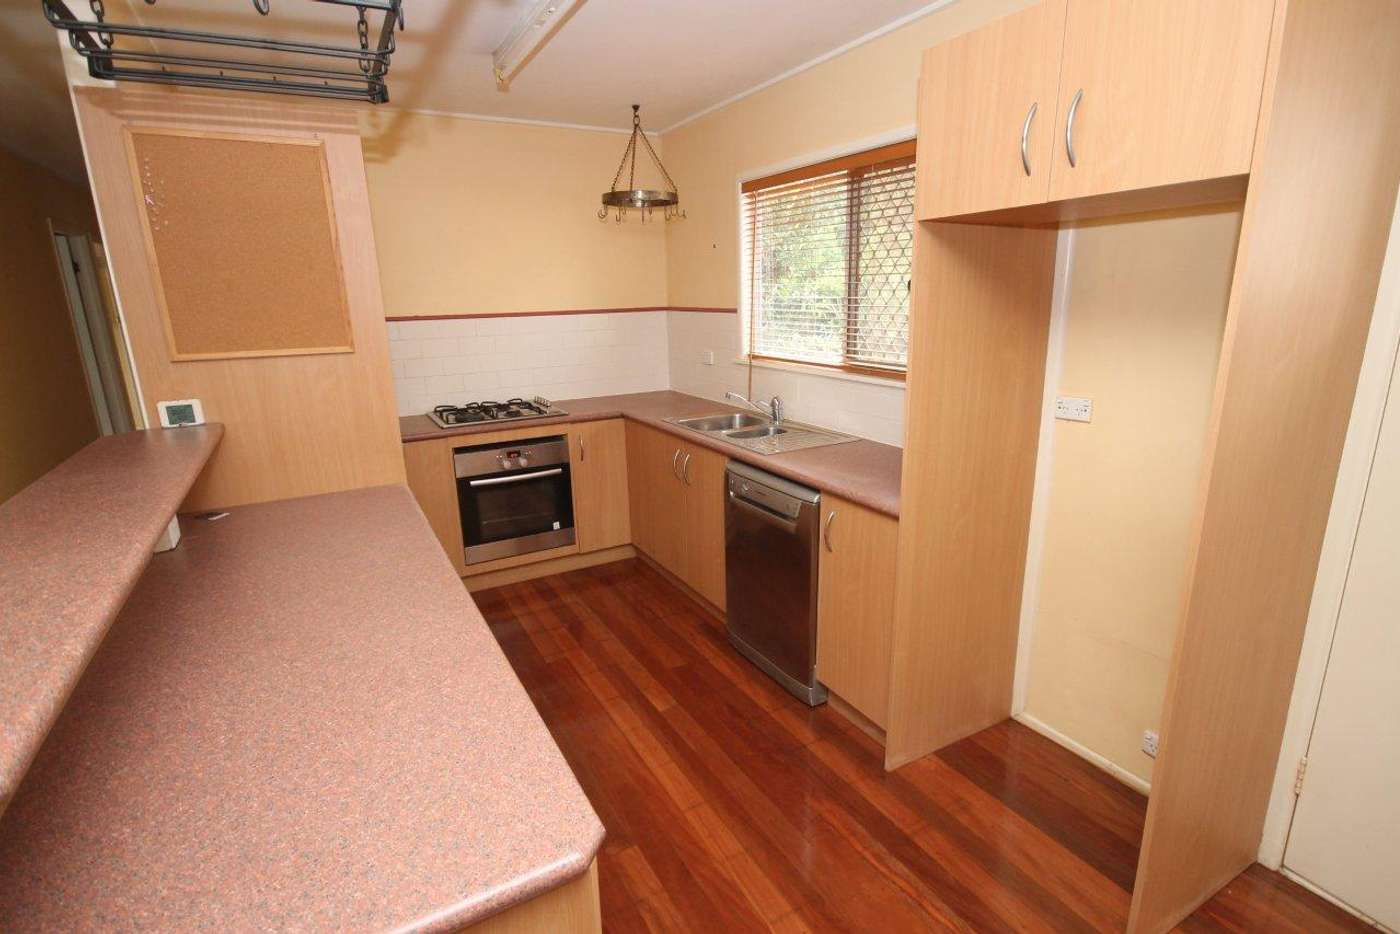 Main view of Homely house listing, 172 MOLLOY ROAD, Morningside QLD 4170